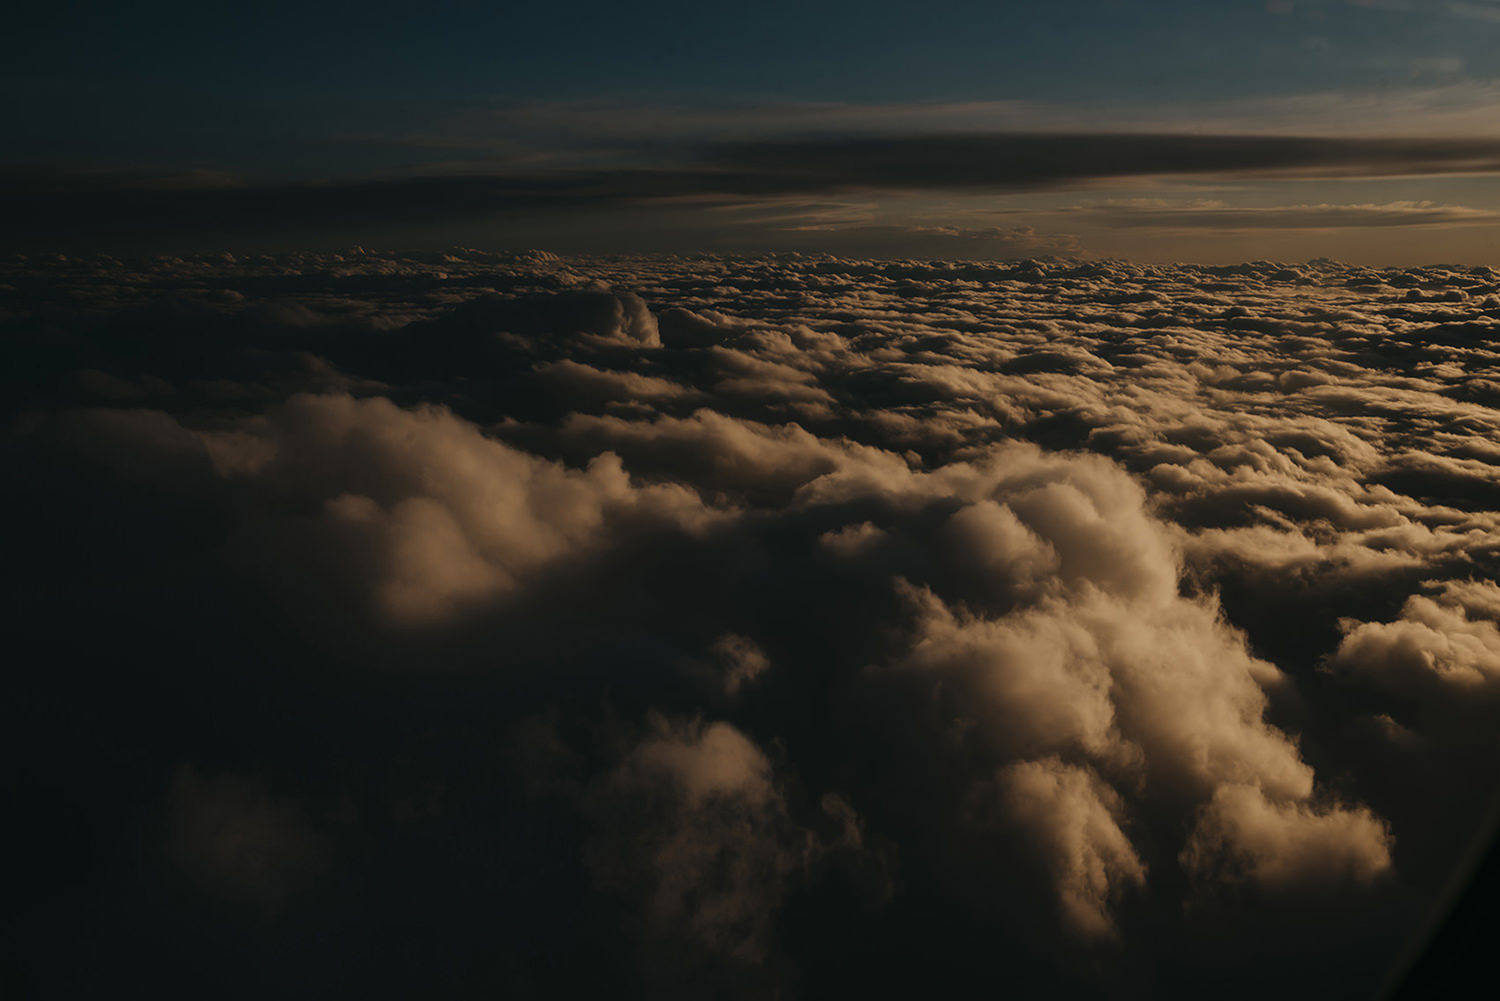 Flying above the clouds to Isle of Man at sunset